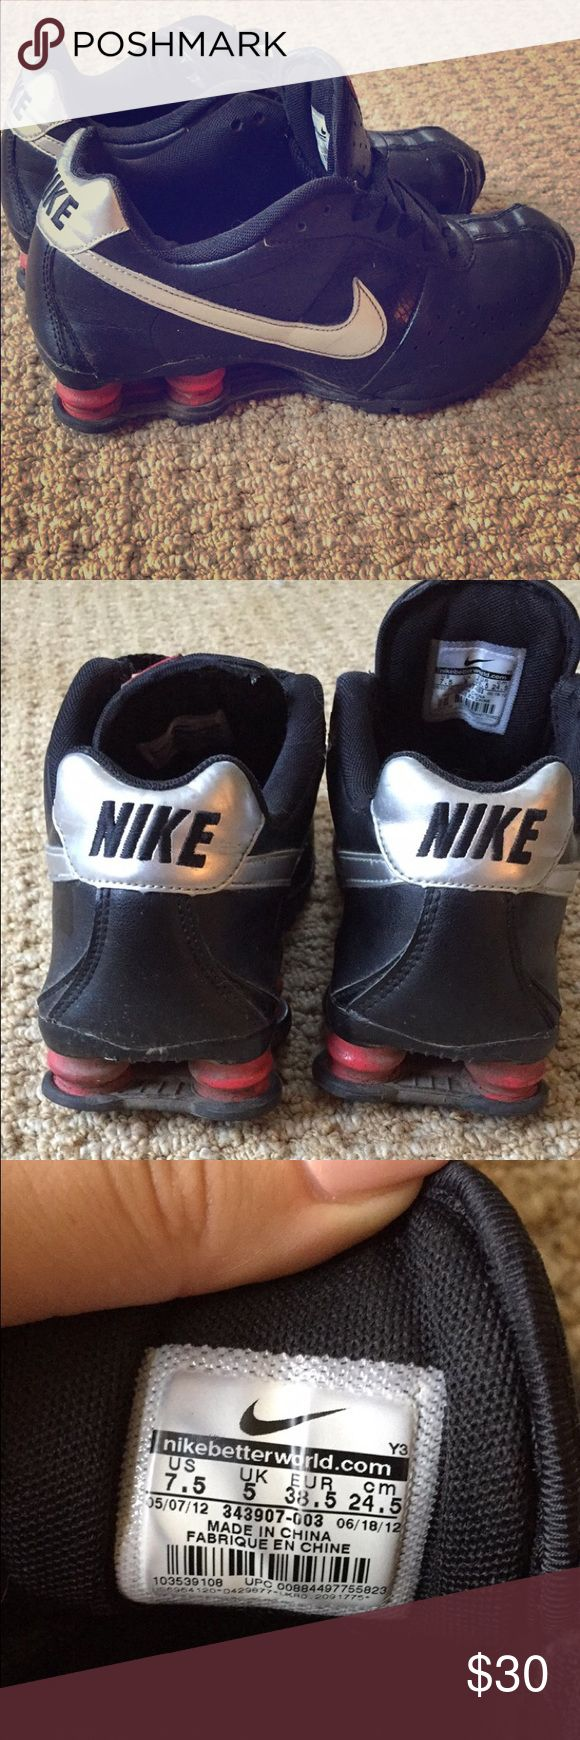 Black Nike Shox Black and silver Nike Shox. Size 7.5. Worn but still in good condition. Make me an offer! Nike Shoes Sneakers